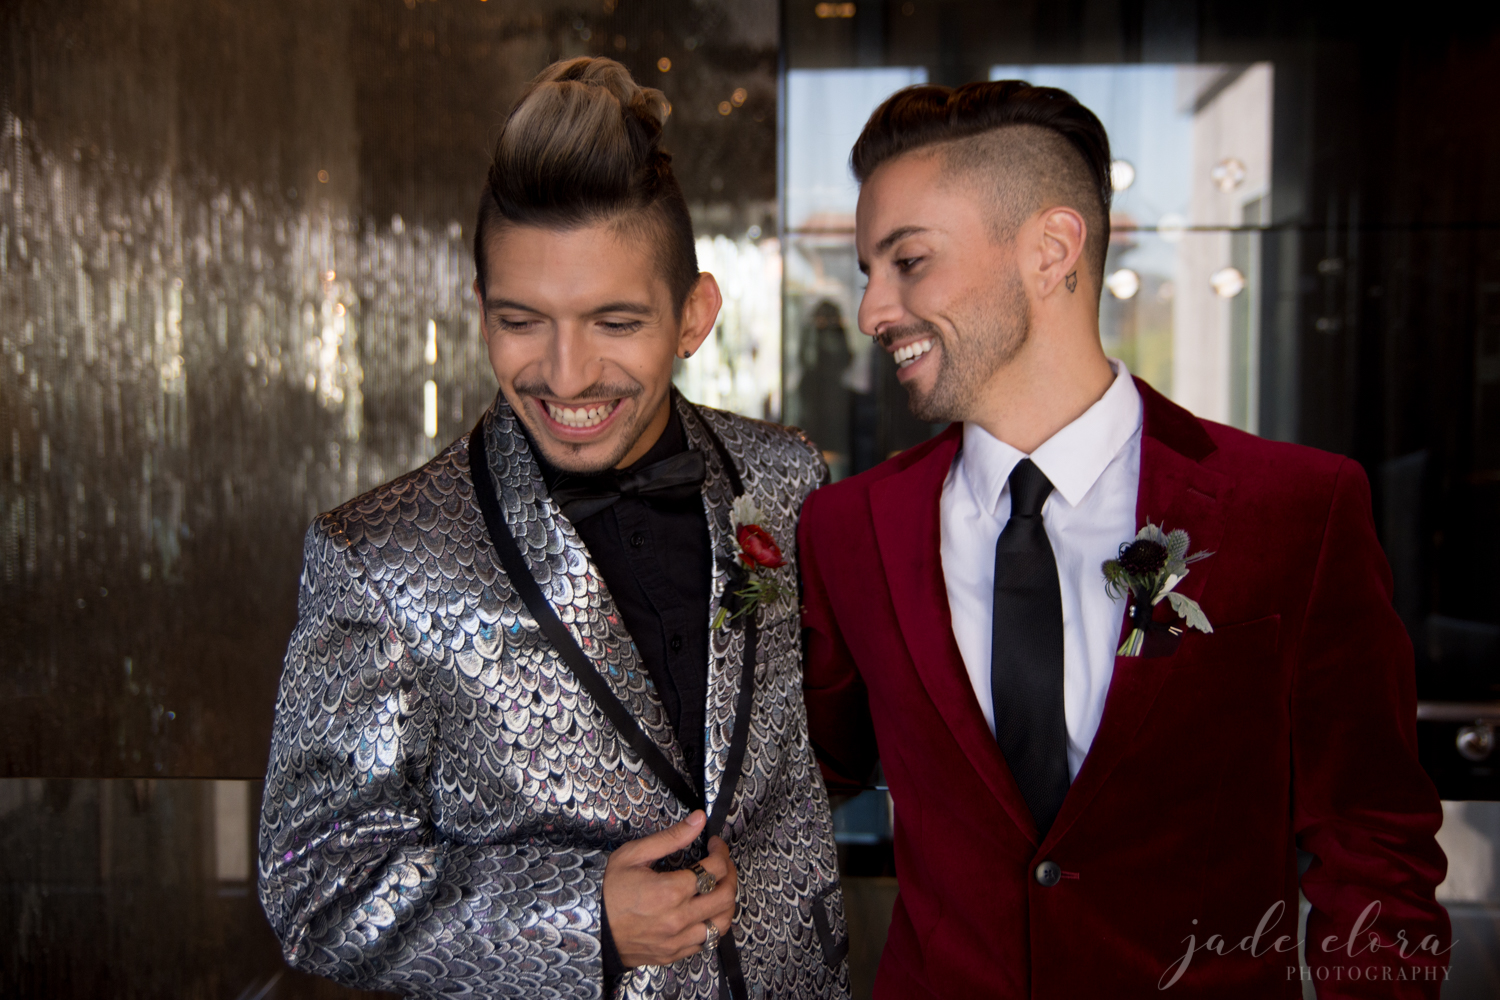 Rock n Roll Gay Couple in Flashy Silver and Red Suits Laughs